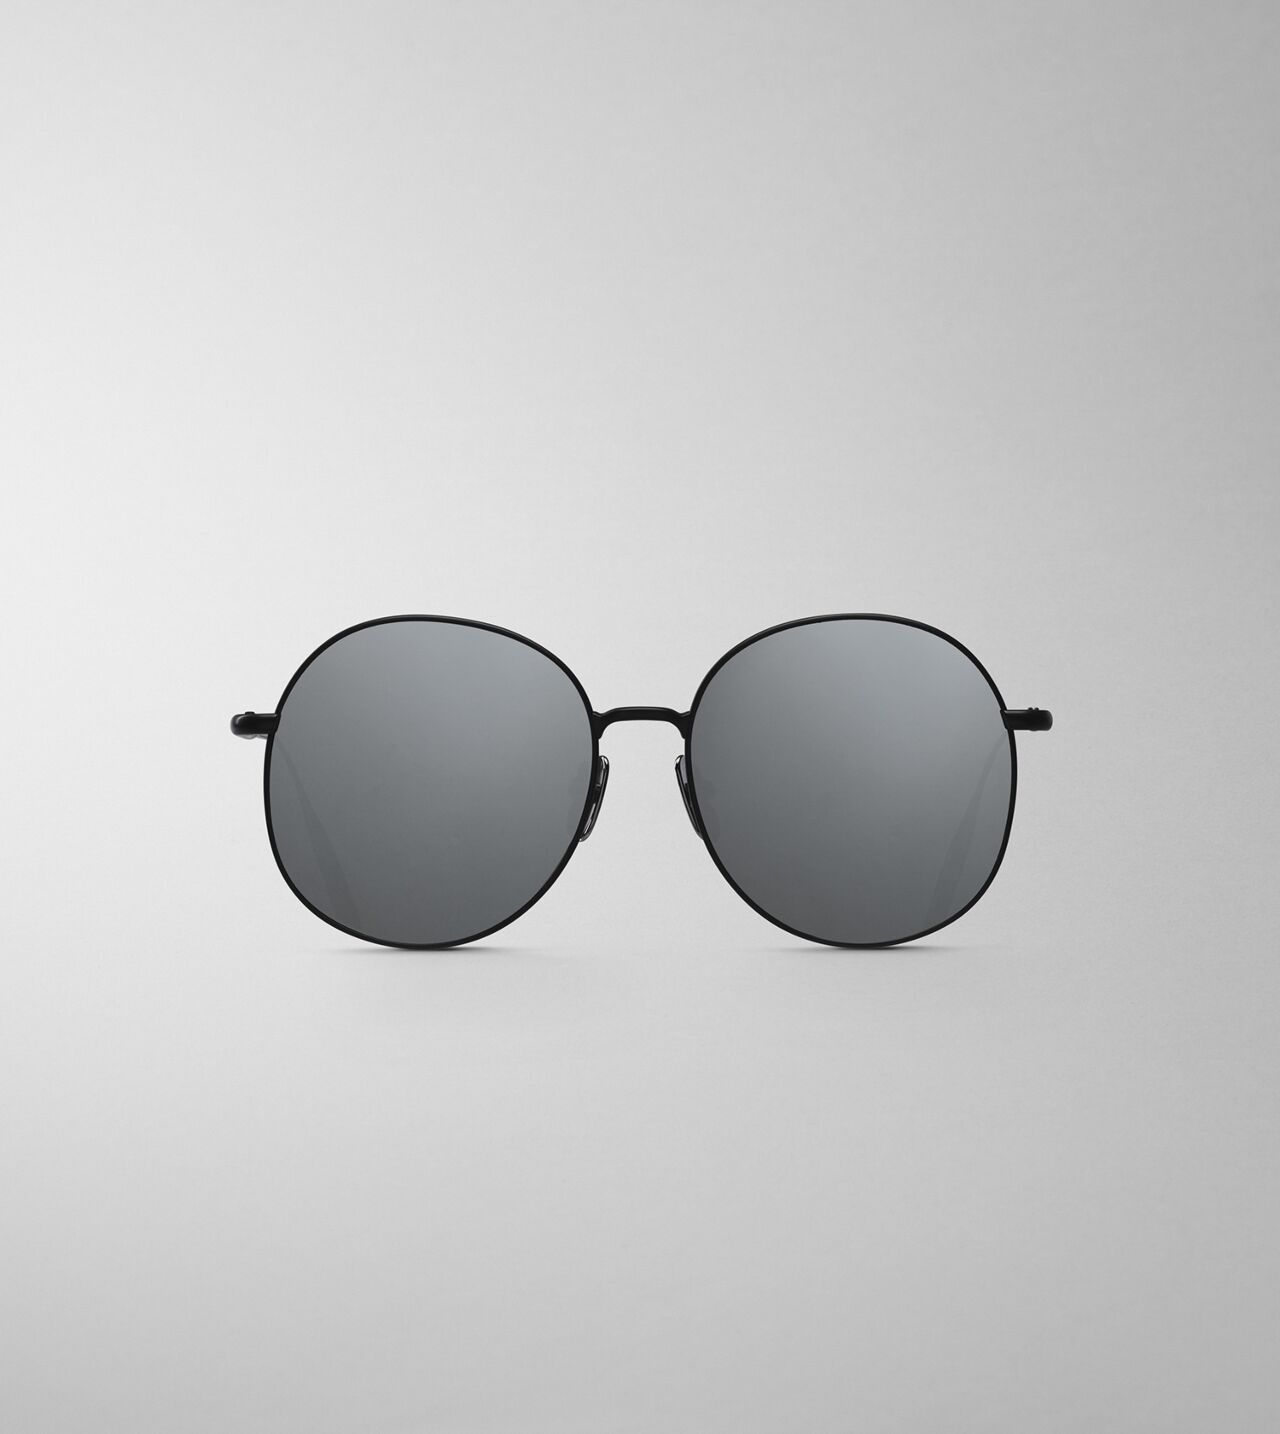 Picture of Byredo The Bohemian in Black grey mirror